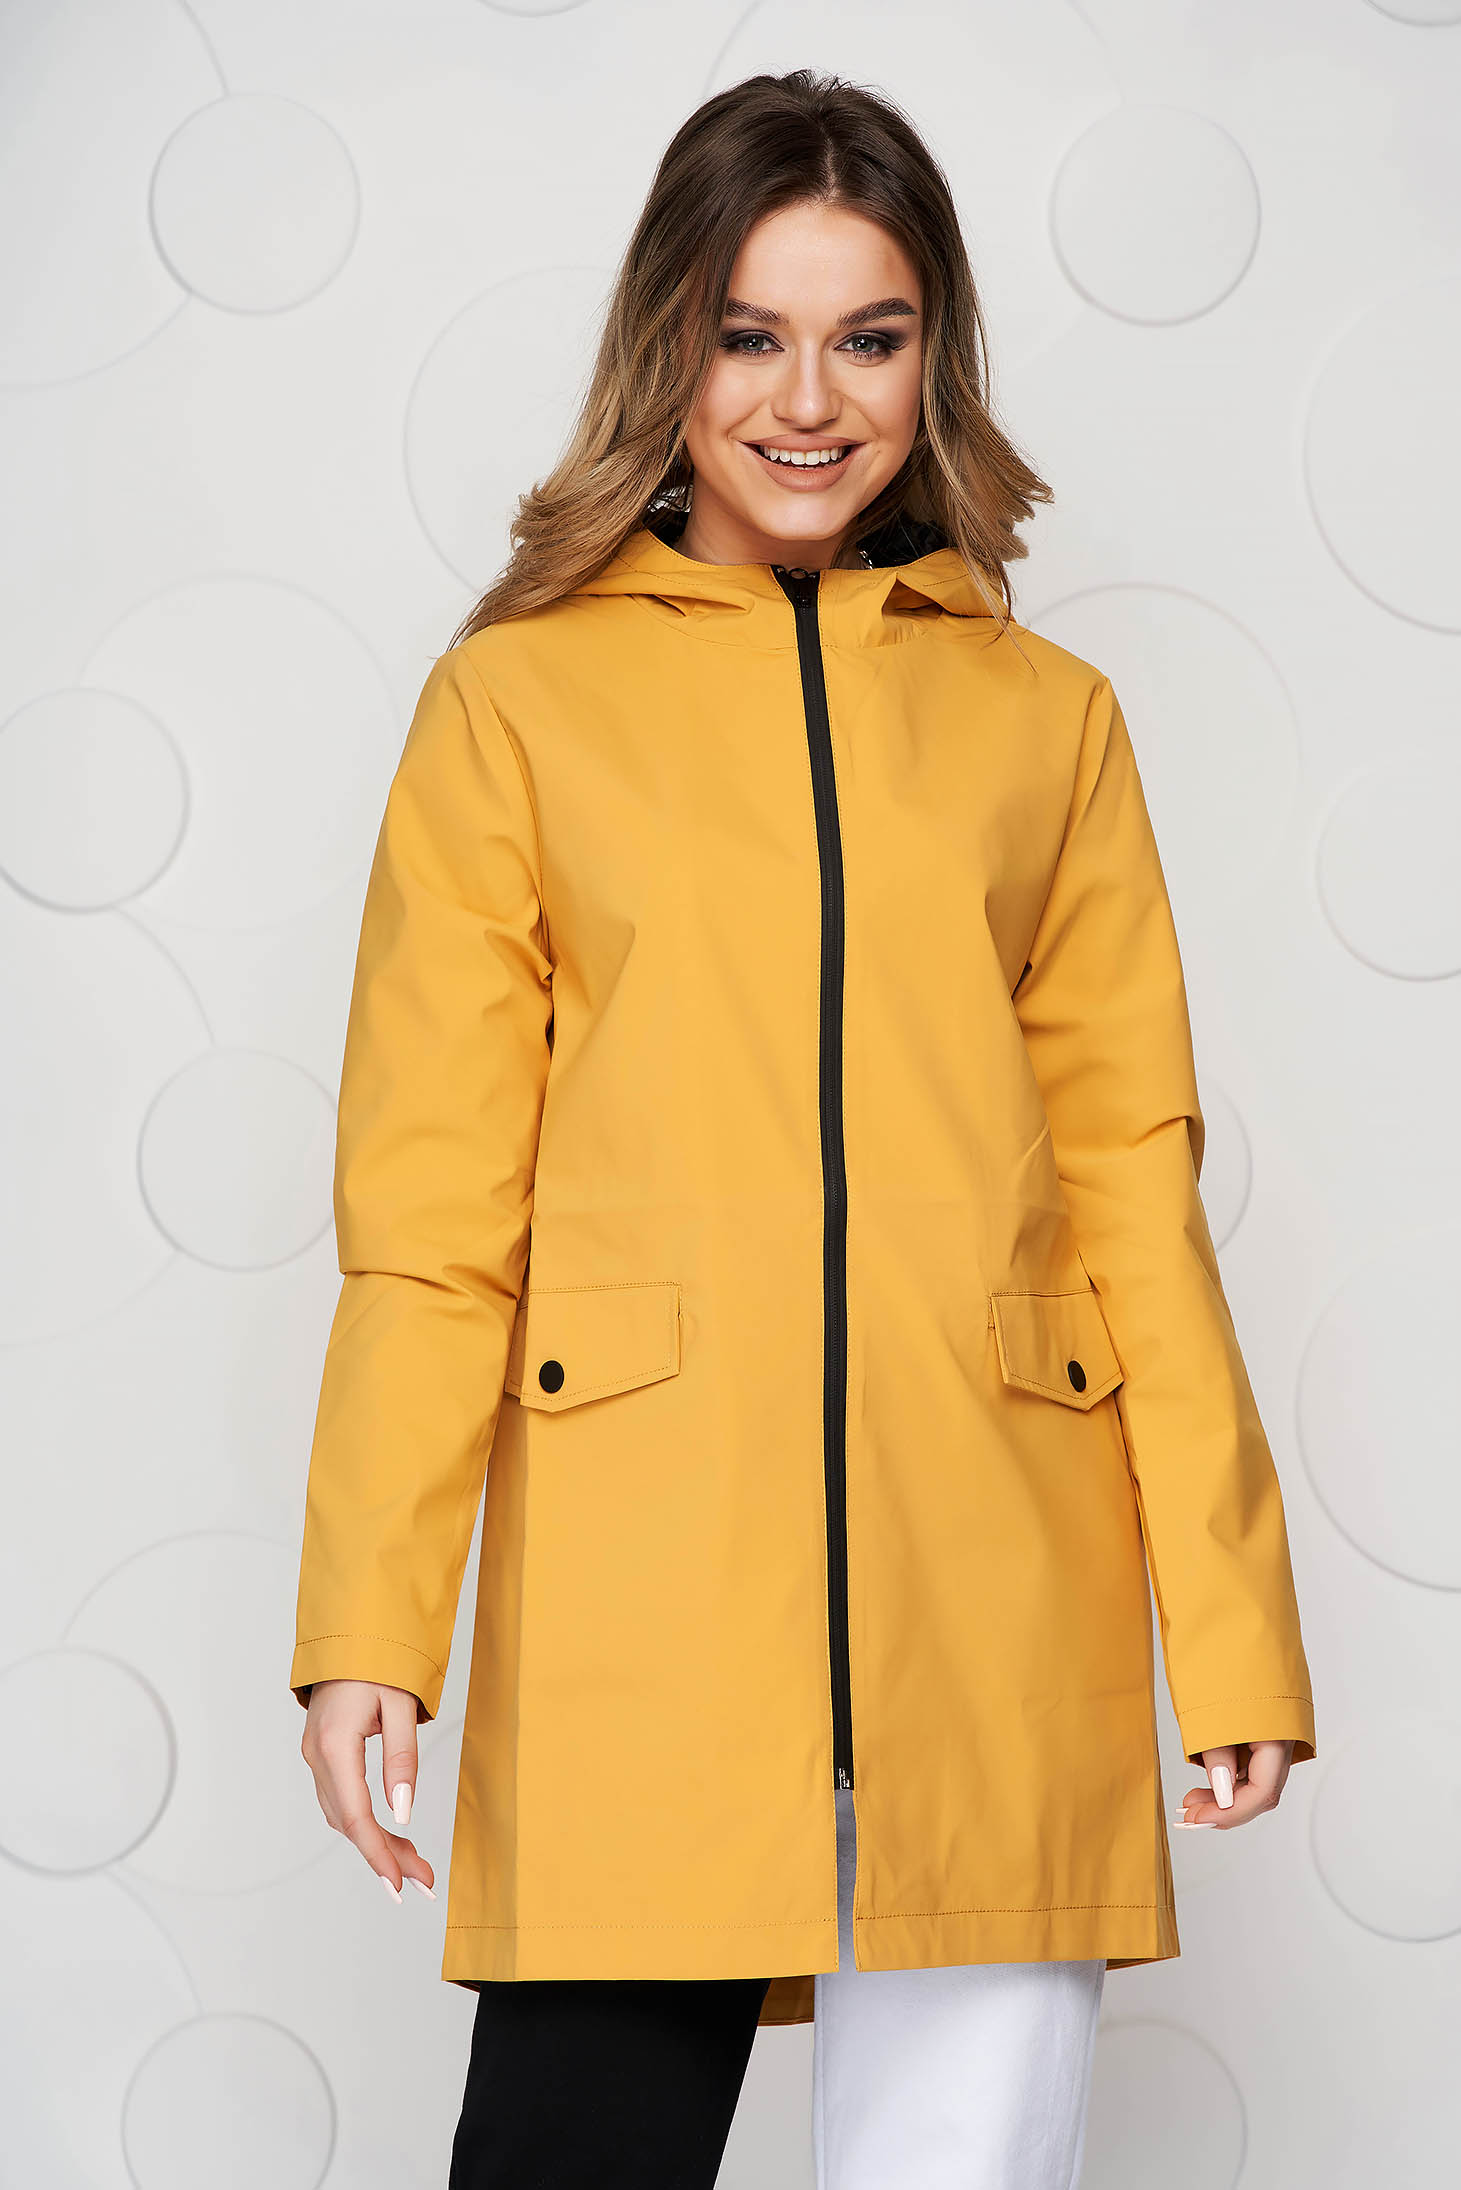 Mustard jacket casual short cut long sleeve with pockets with inside lining